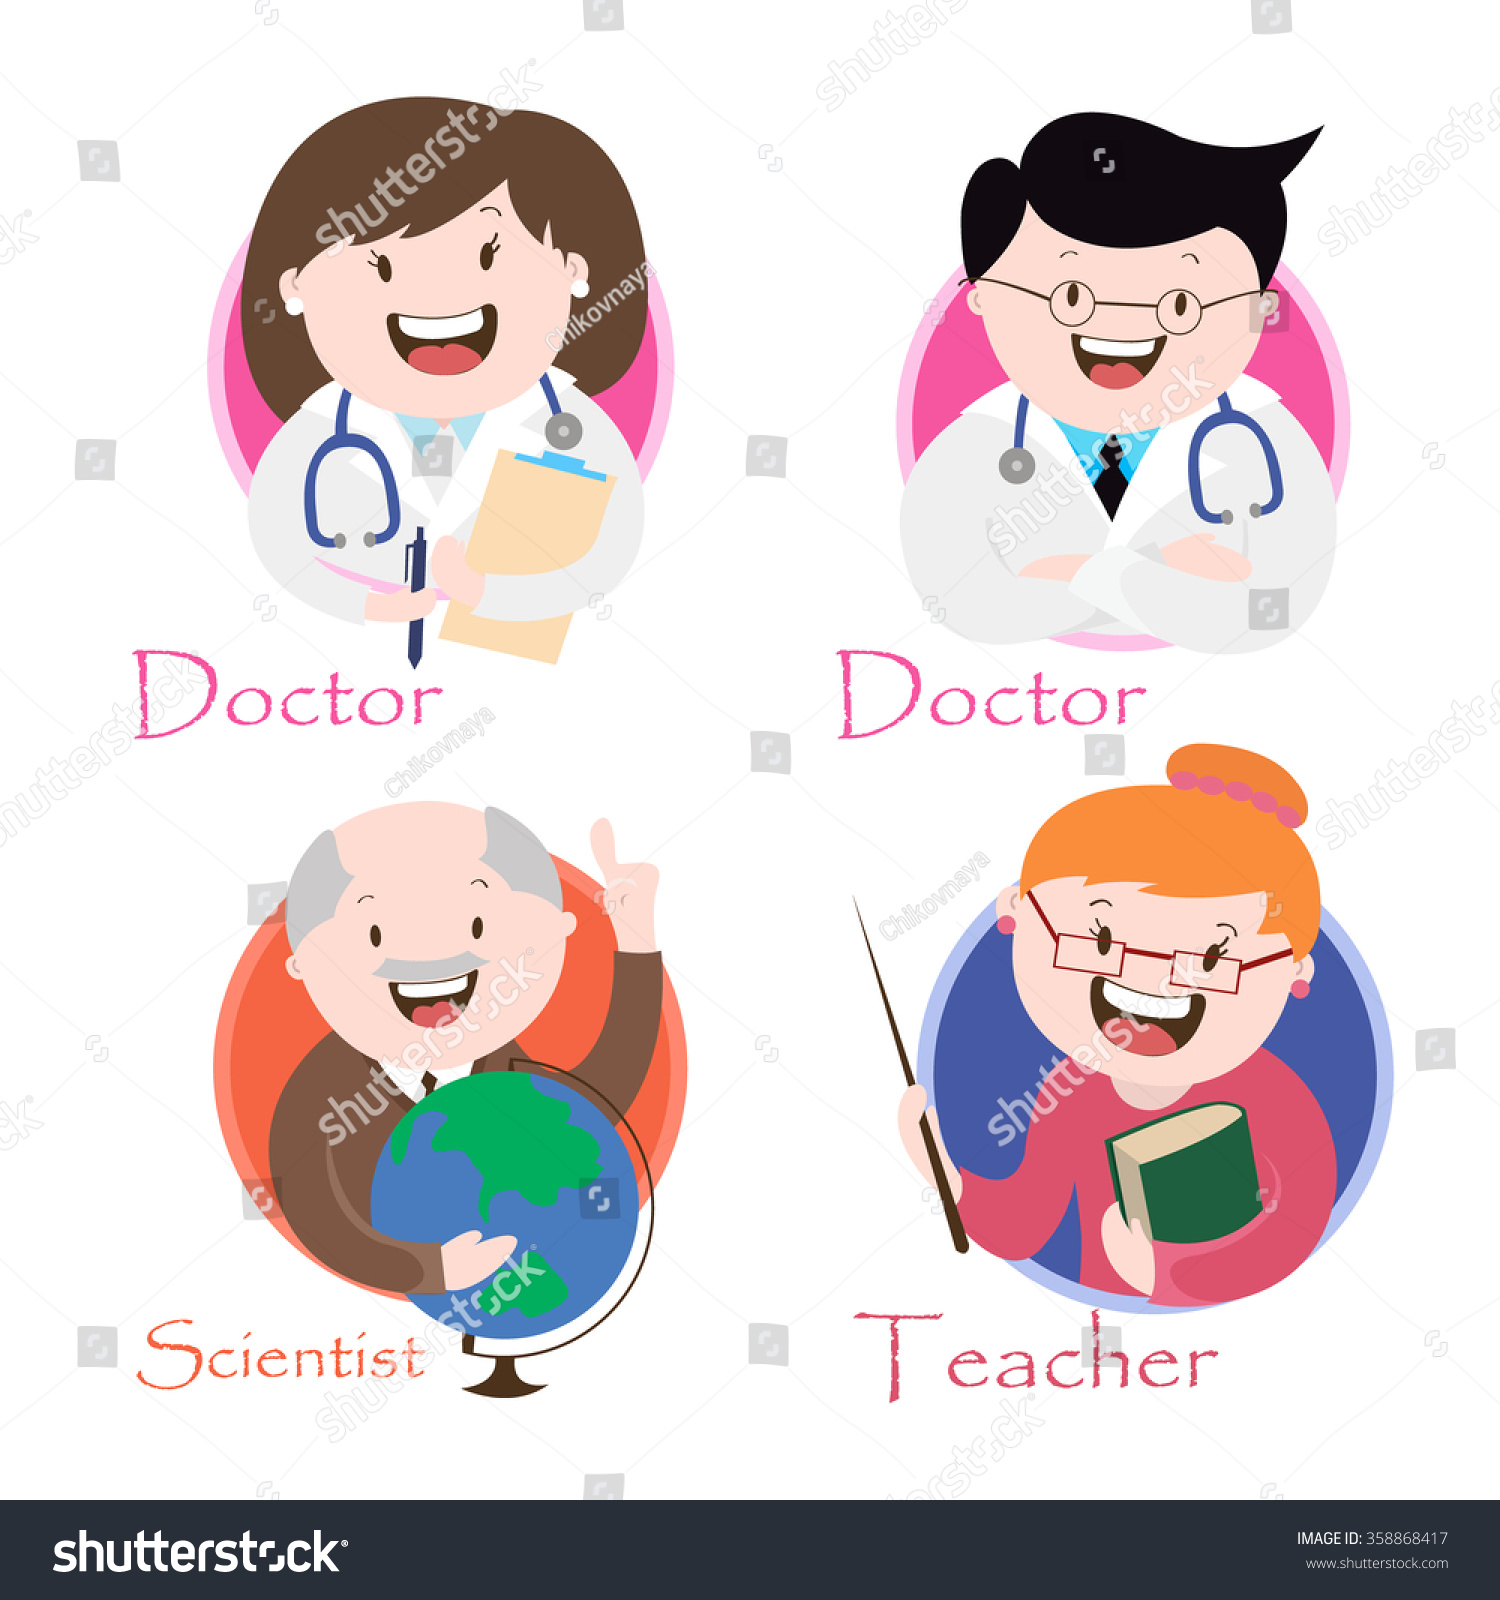 profession teacher doctor scientist vector graphics stock vector royalty free 358868417 https www shutterstock com image vector profession teacher doctor scientist vector graphics 358868417